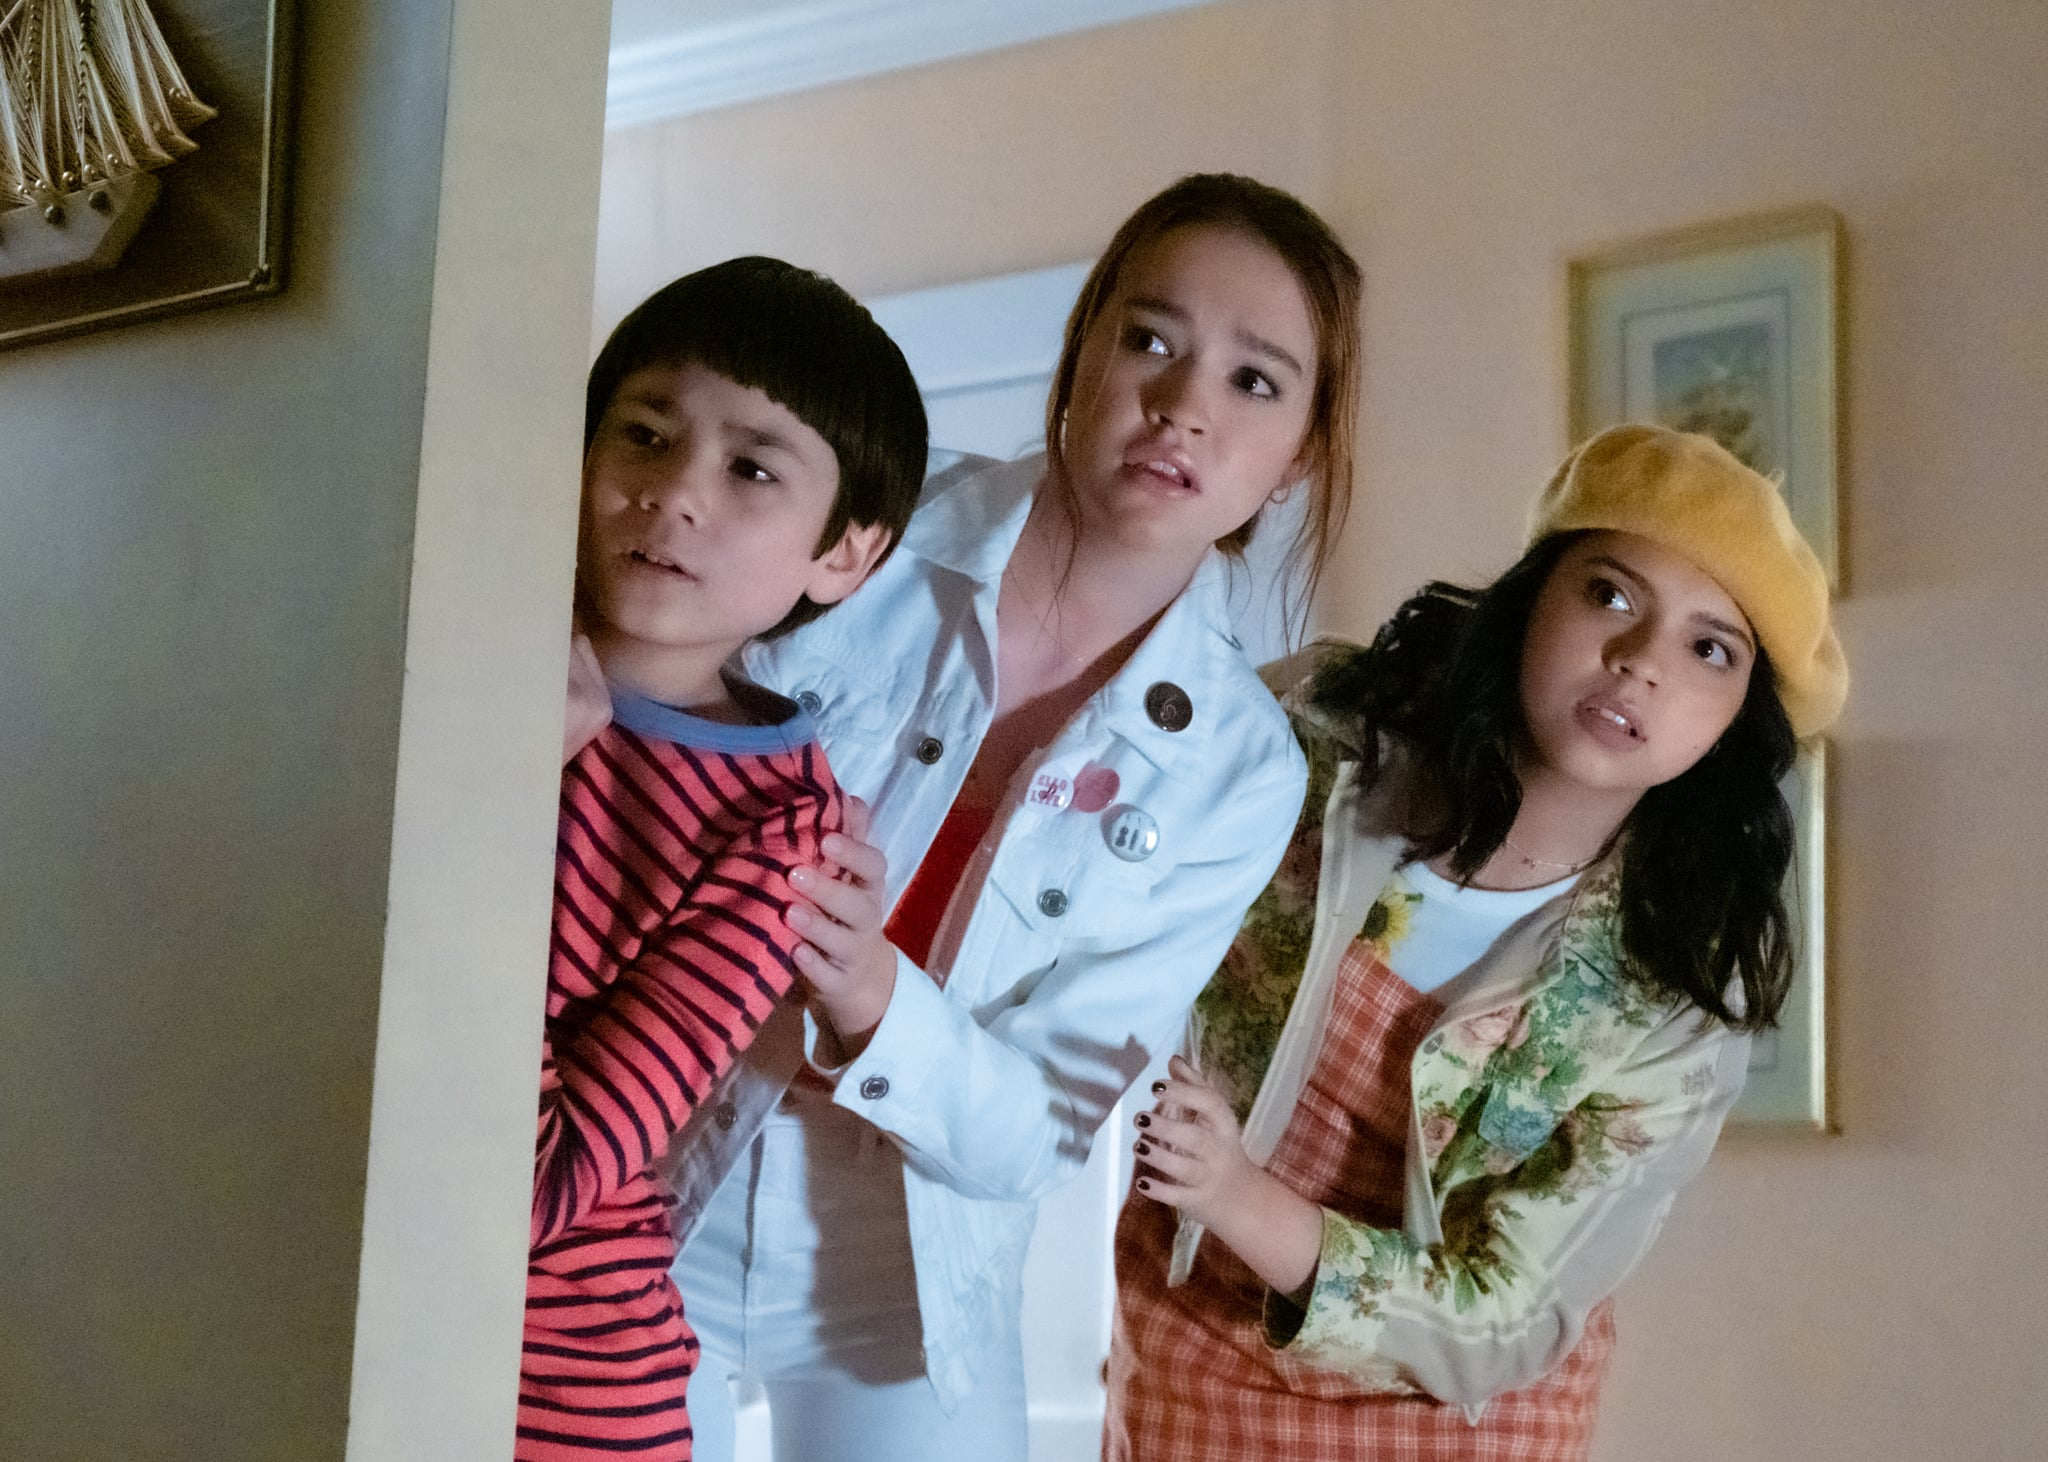 THE SLEEPING: (from left to right) LUCAS JAYE as LEWIS, SADIE STANLEY as CLANCY, CREE CICCHINO as MIM. Cr. CLAIRE FOLGER / NETFLIX © 2020